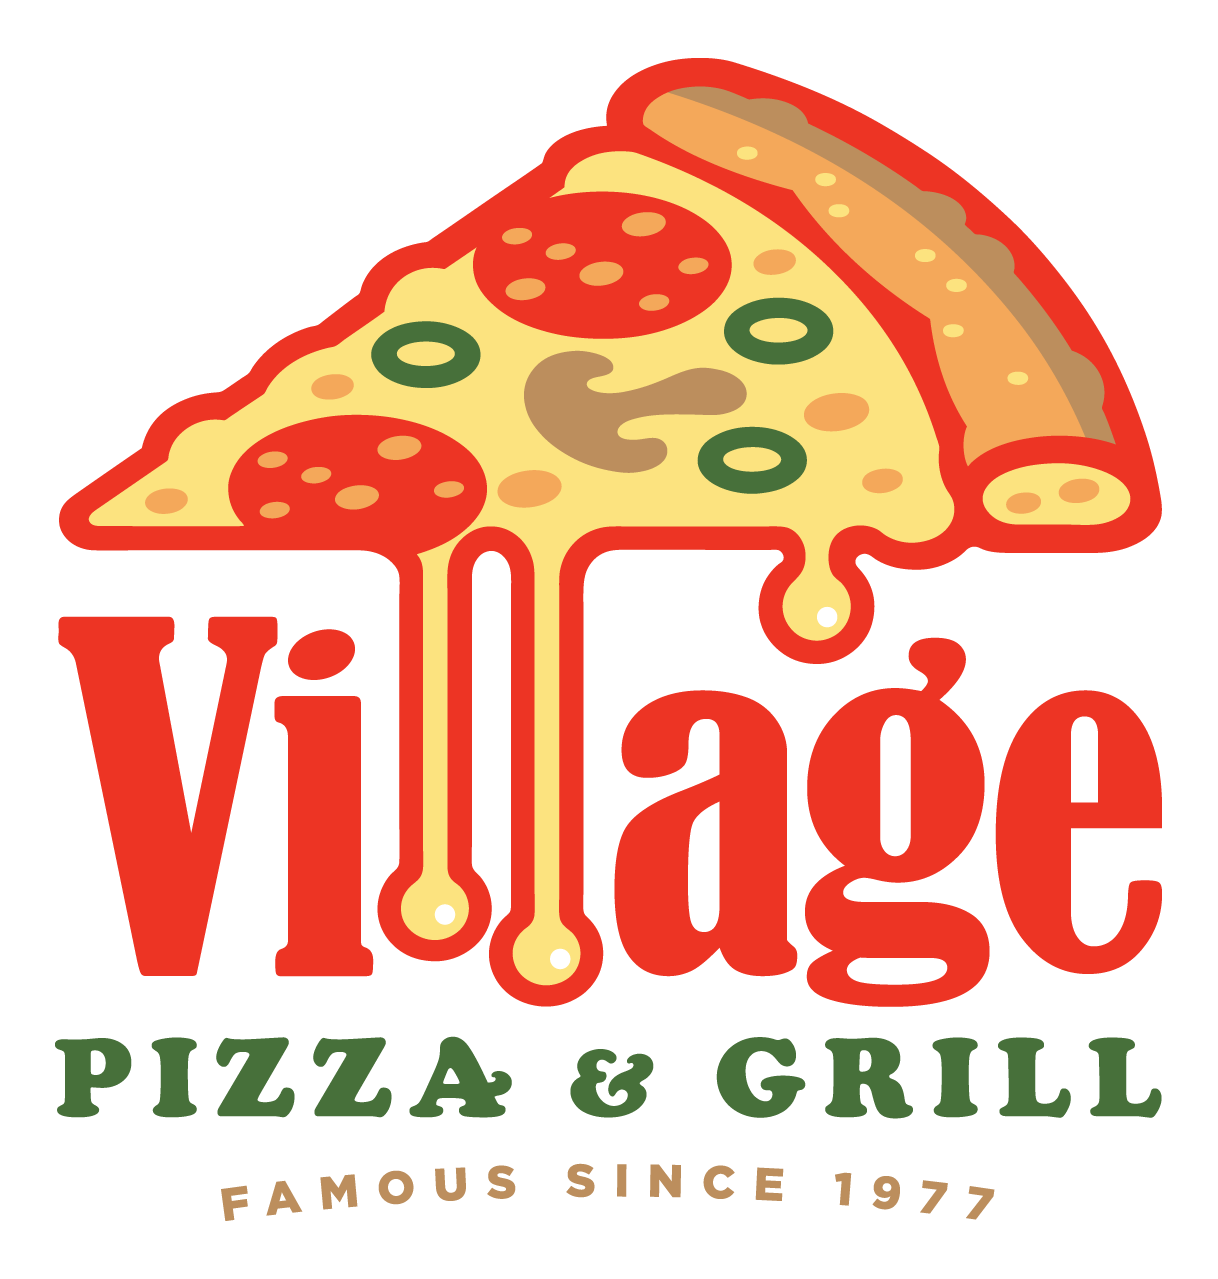 VILLAGE PIZZA GRILL needs a powerful new logo that stands out.